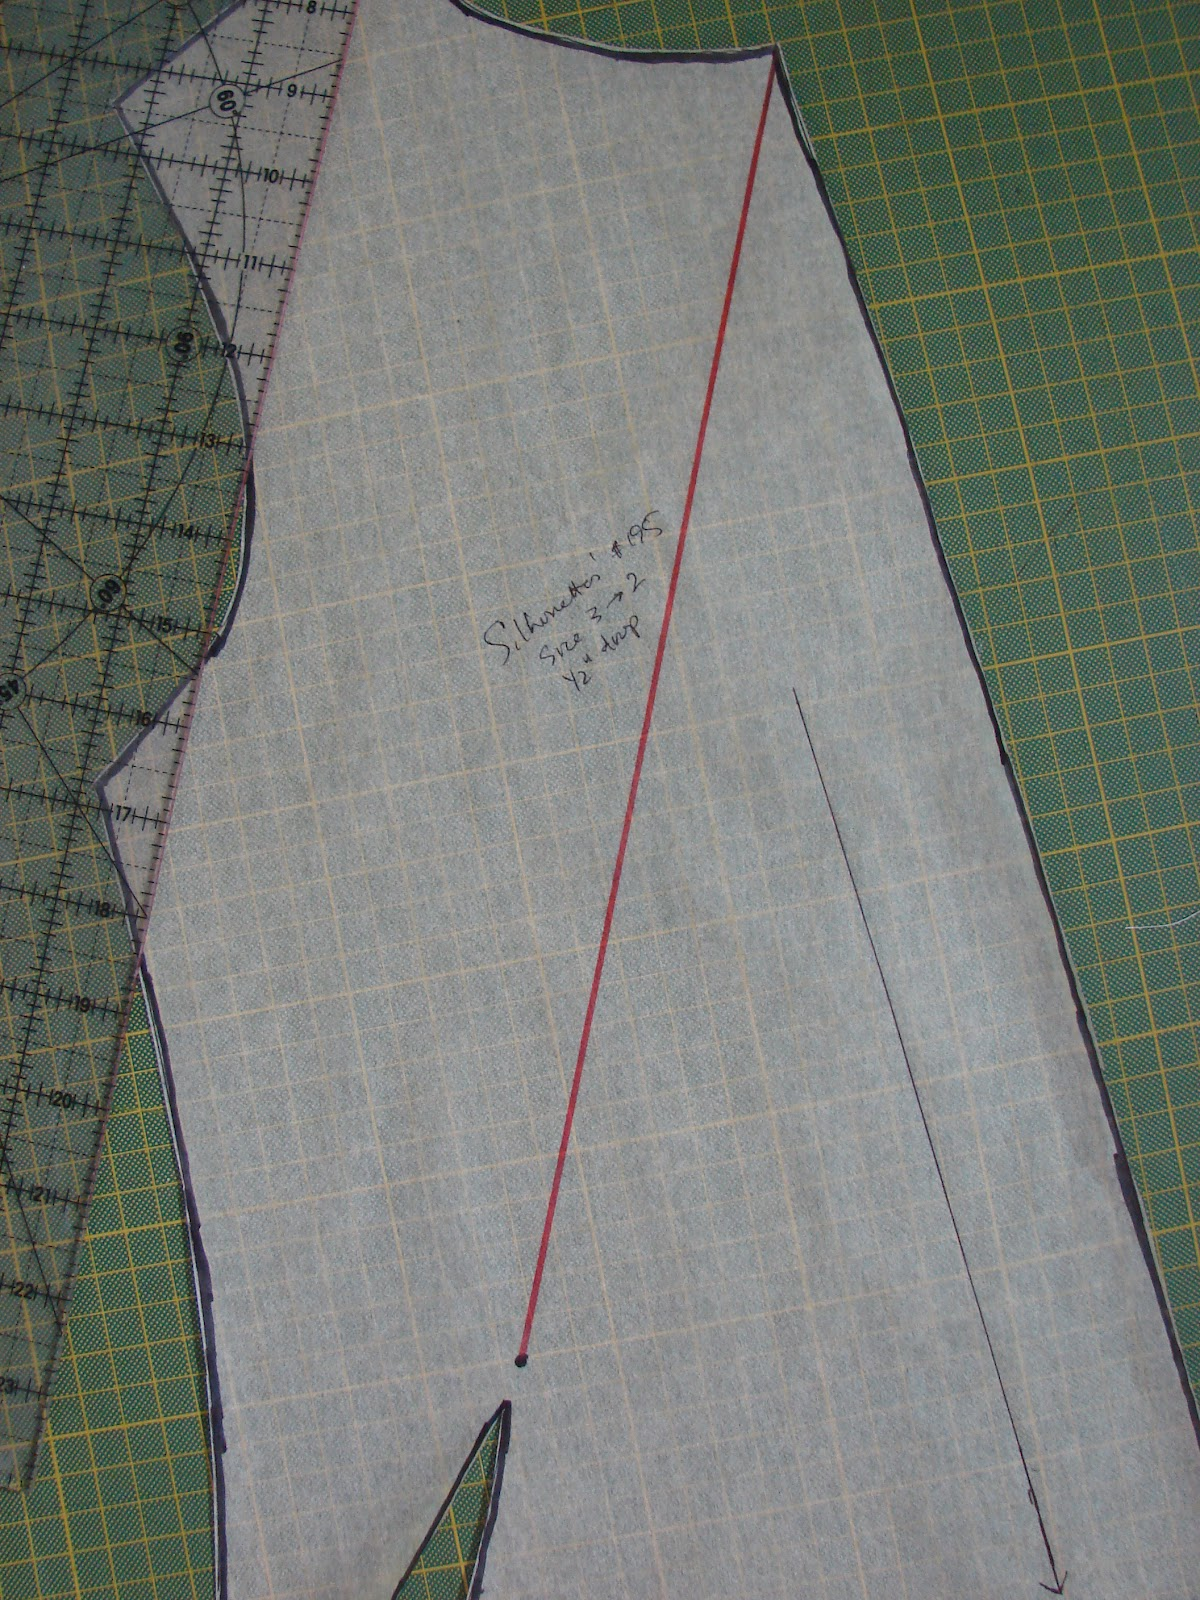 Free sewing tutorial draft a deep cowl neck top poldapop designs paper as youll need to do a lot of cutting to move the dart to the neckline draw a straight line from the dart point to the center front neckline jeuxipadfo Image collections